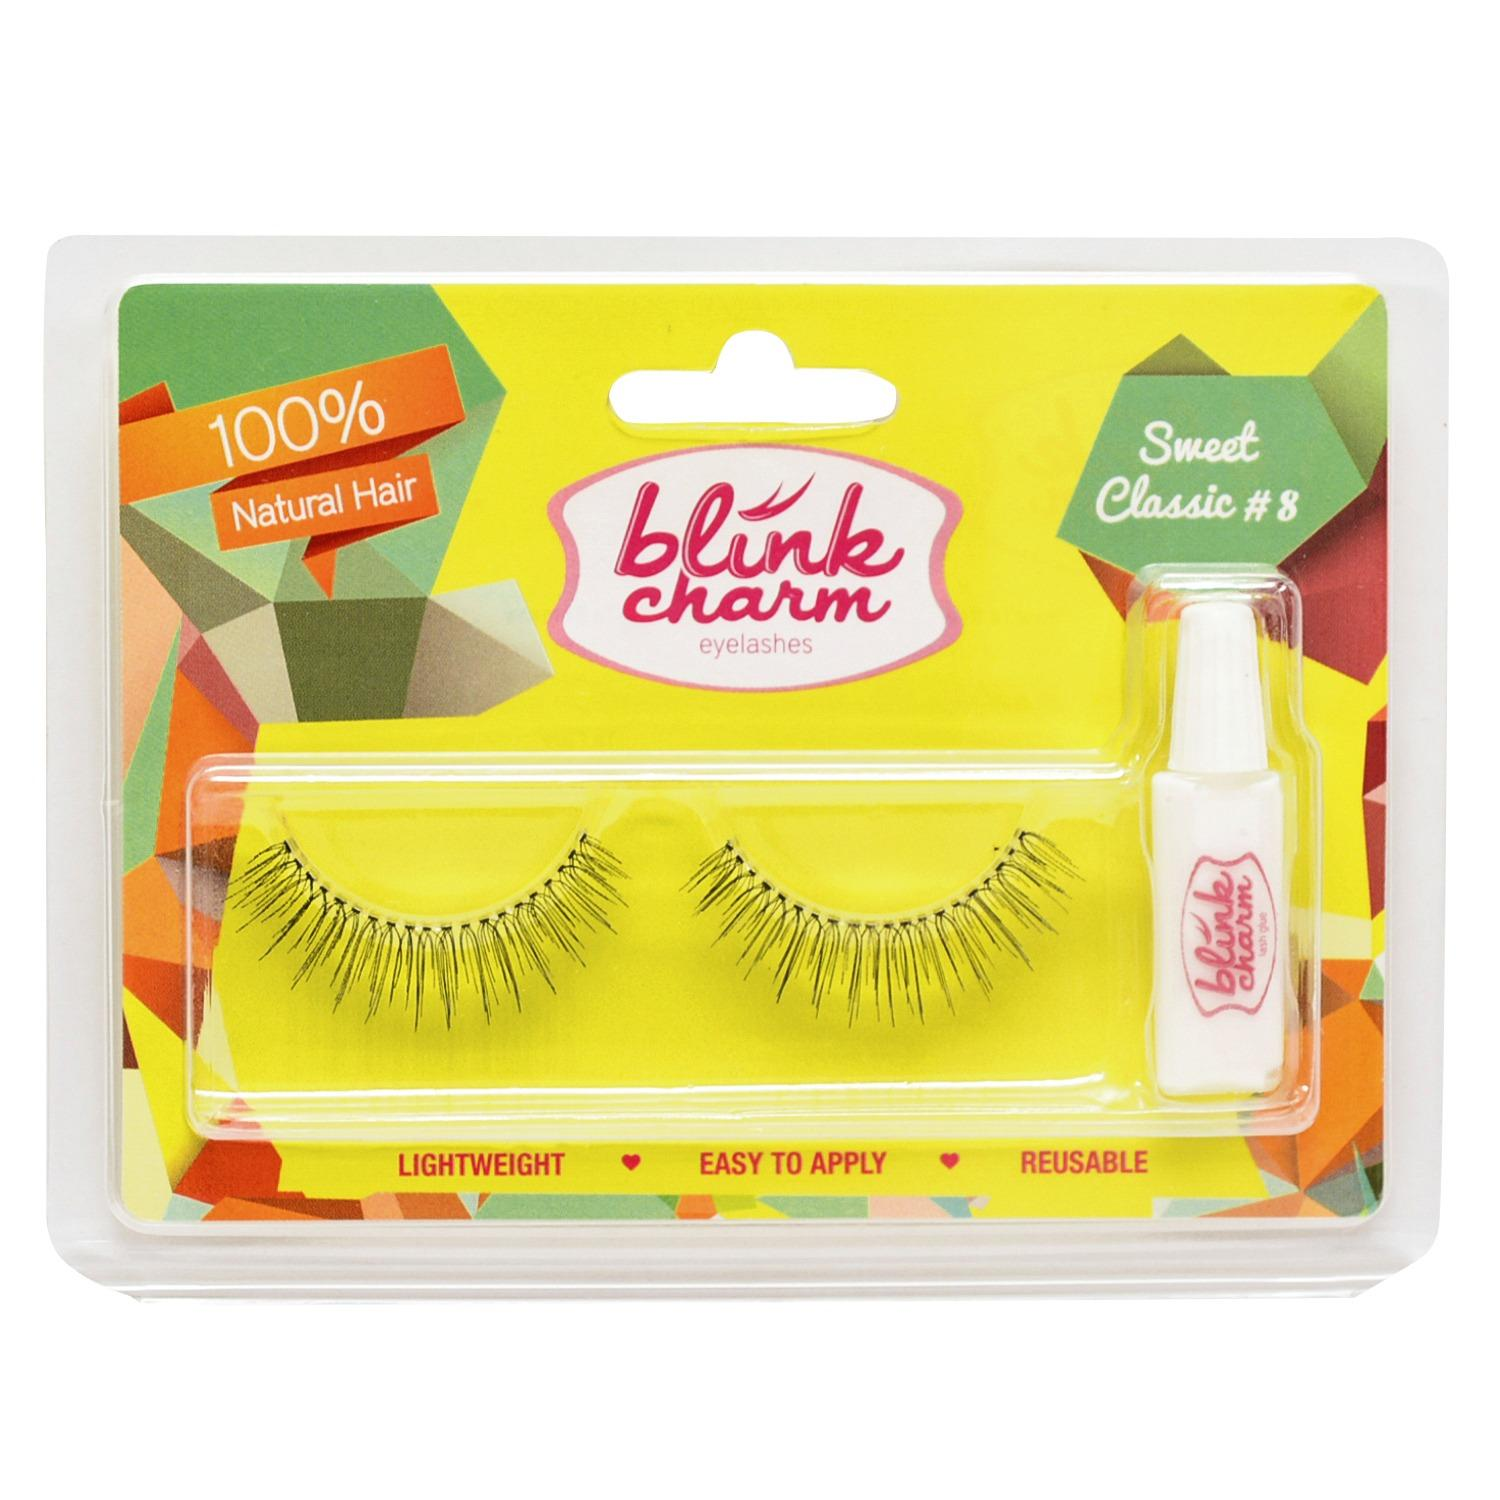 Blink Charm Eyelashes Sweet Classic #8 - 1 Pair